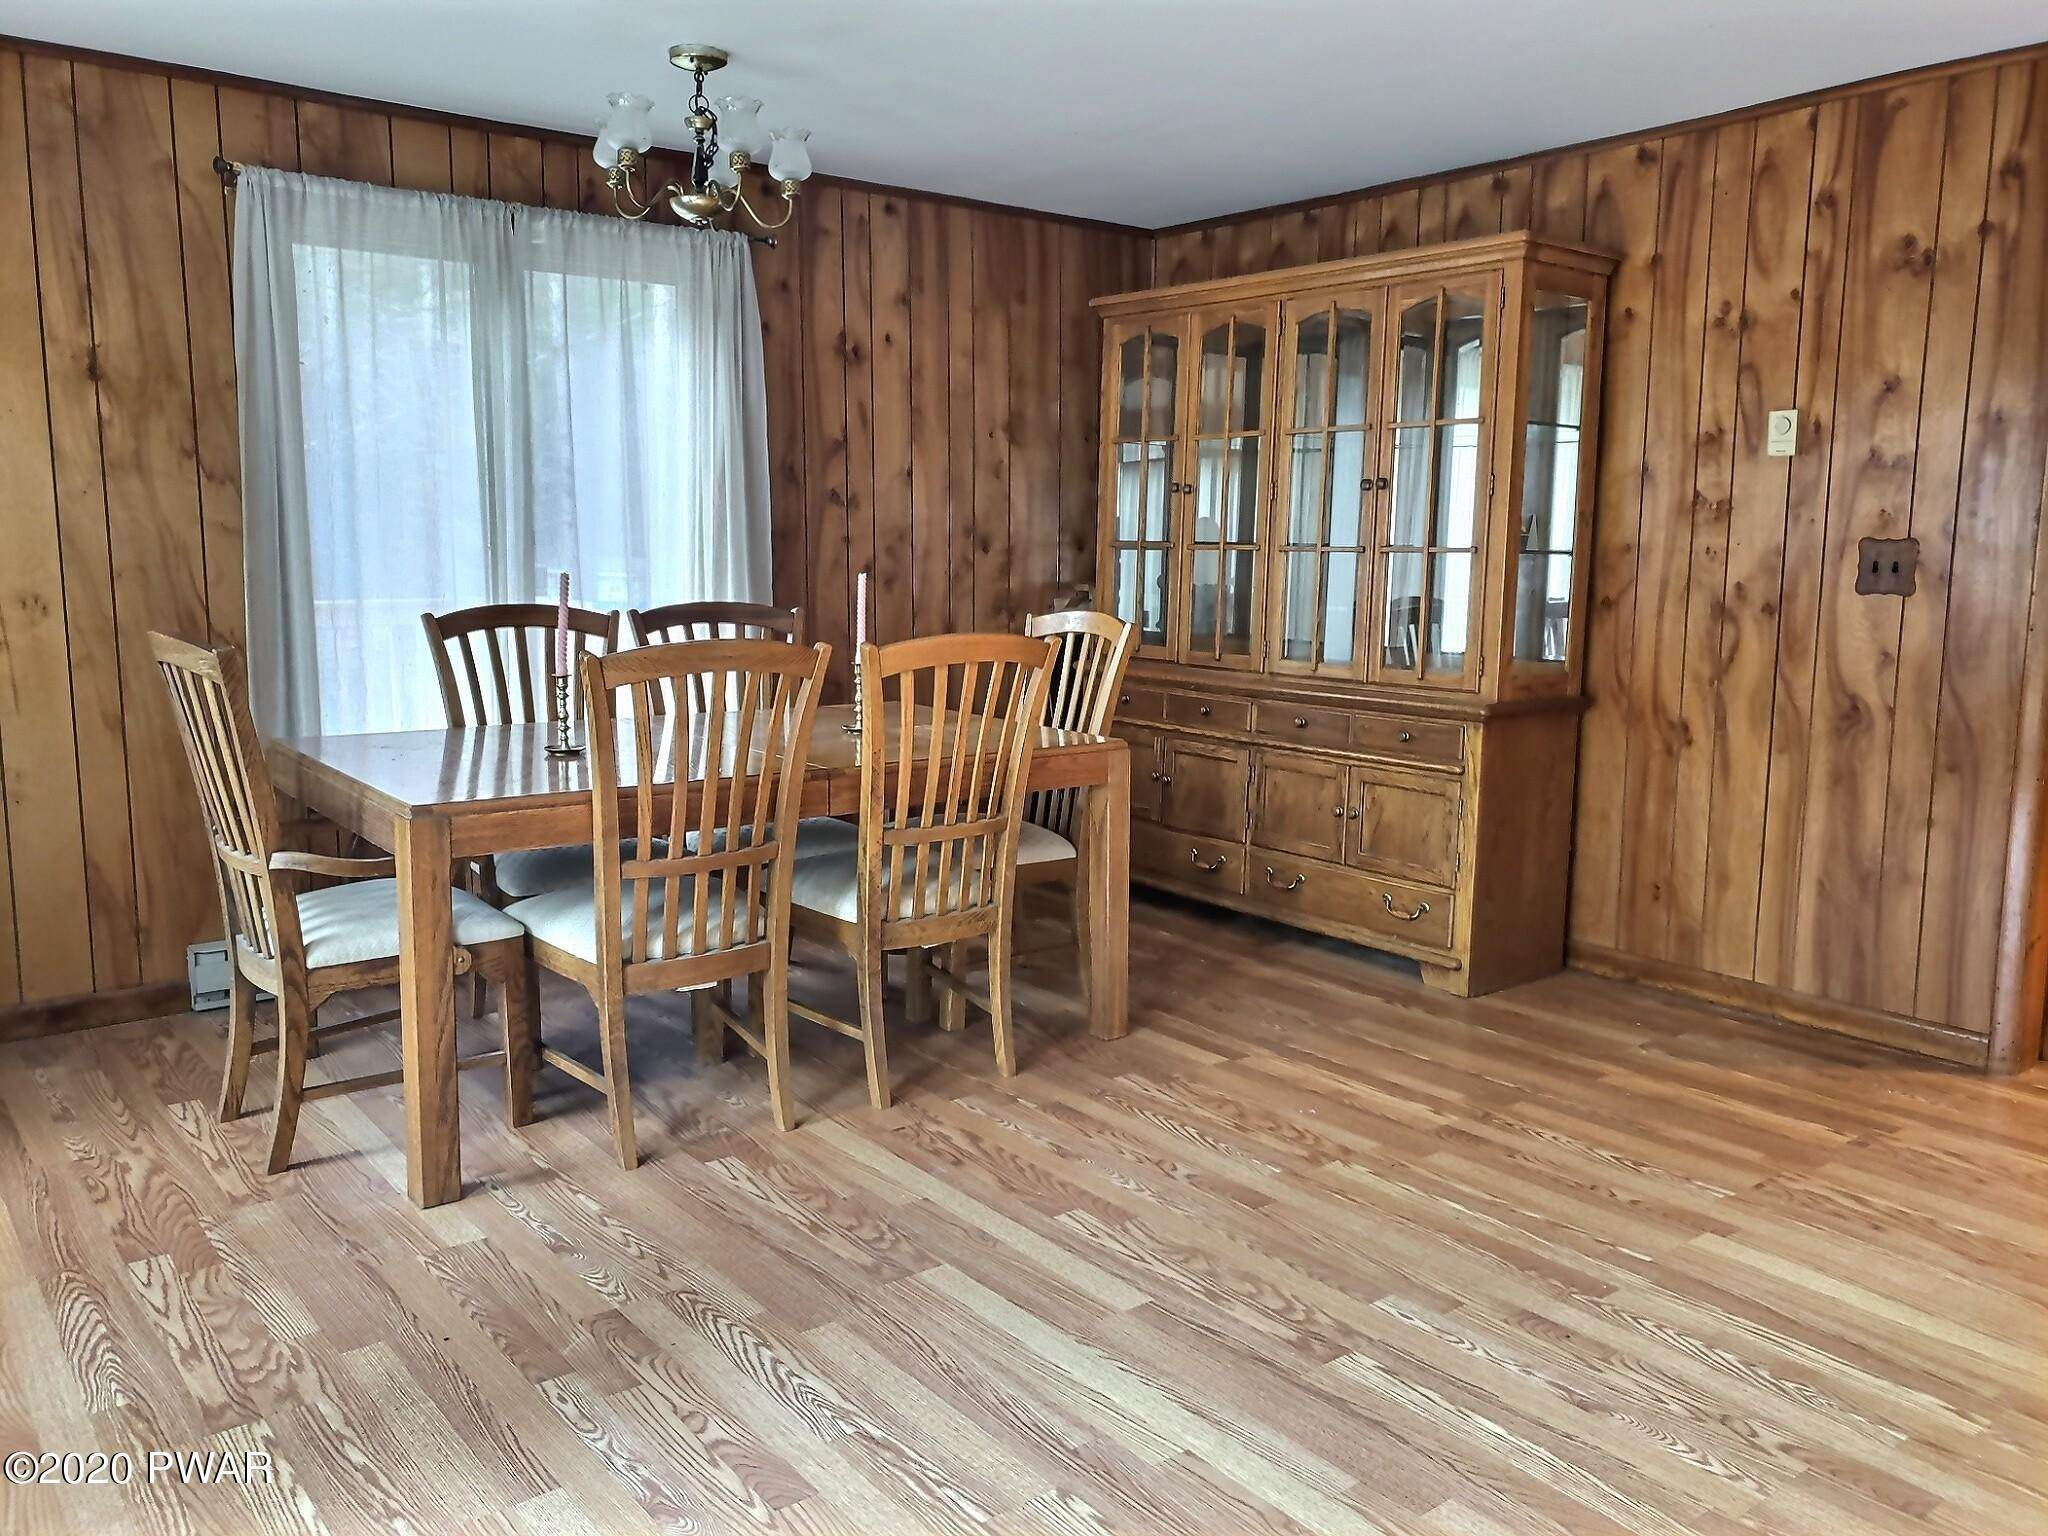 5. Single Family Homes for Sale at 153 Mckean Valley Rd Shohola, Pennsylvania 18458 United States